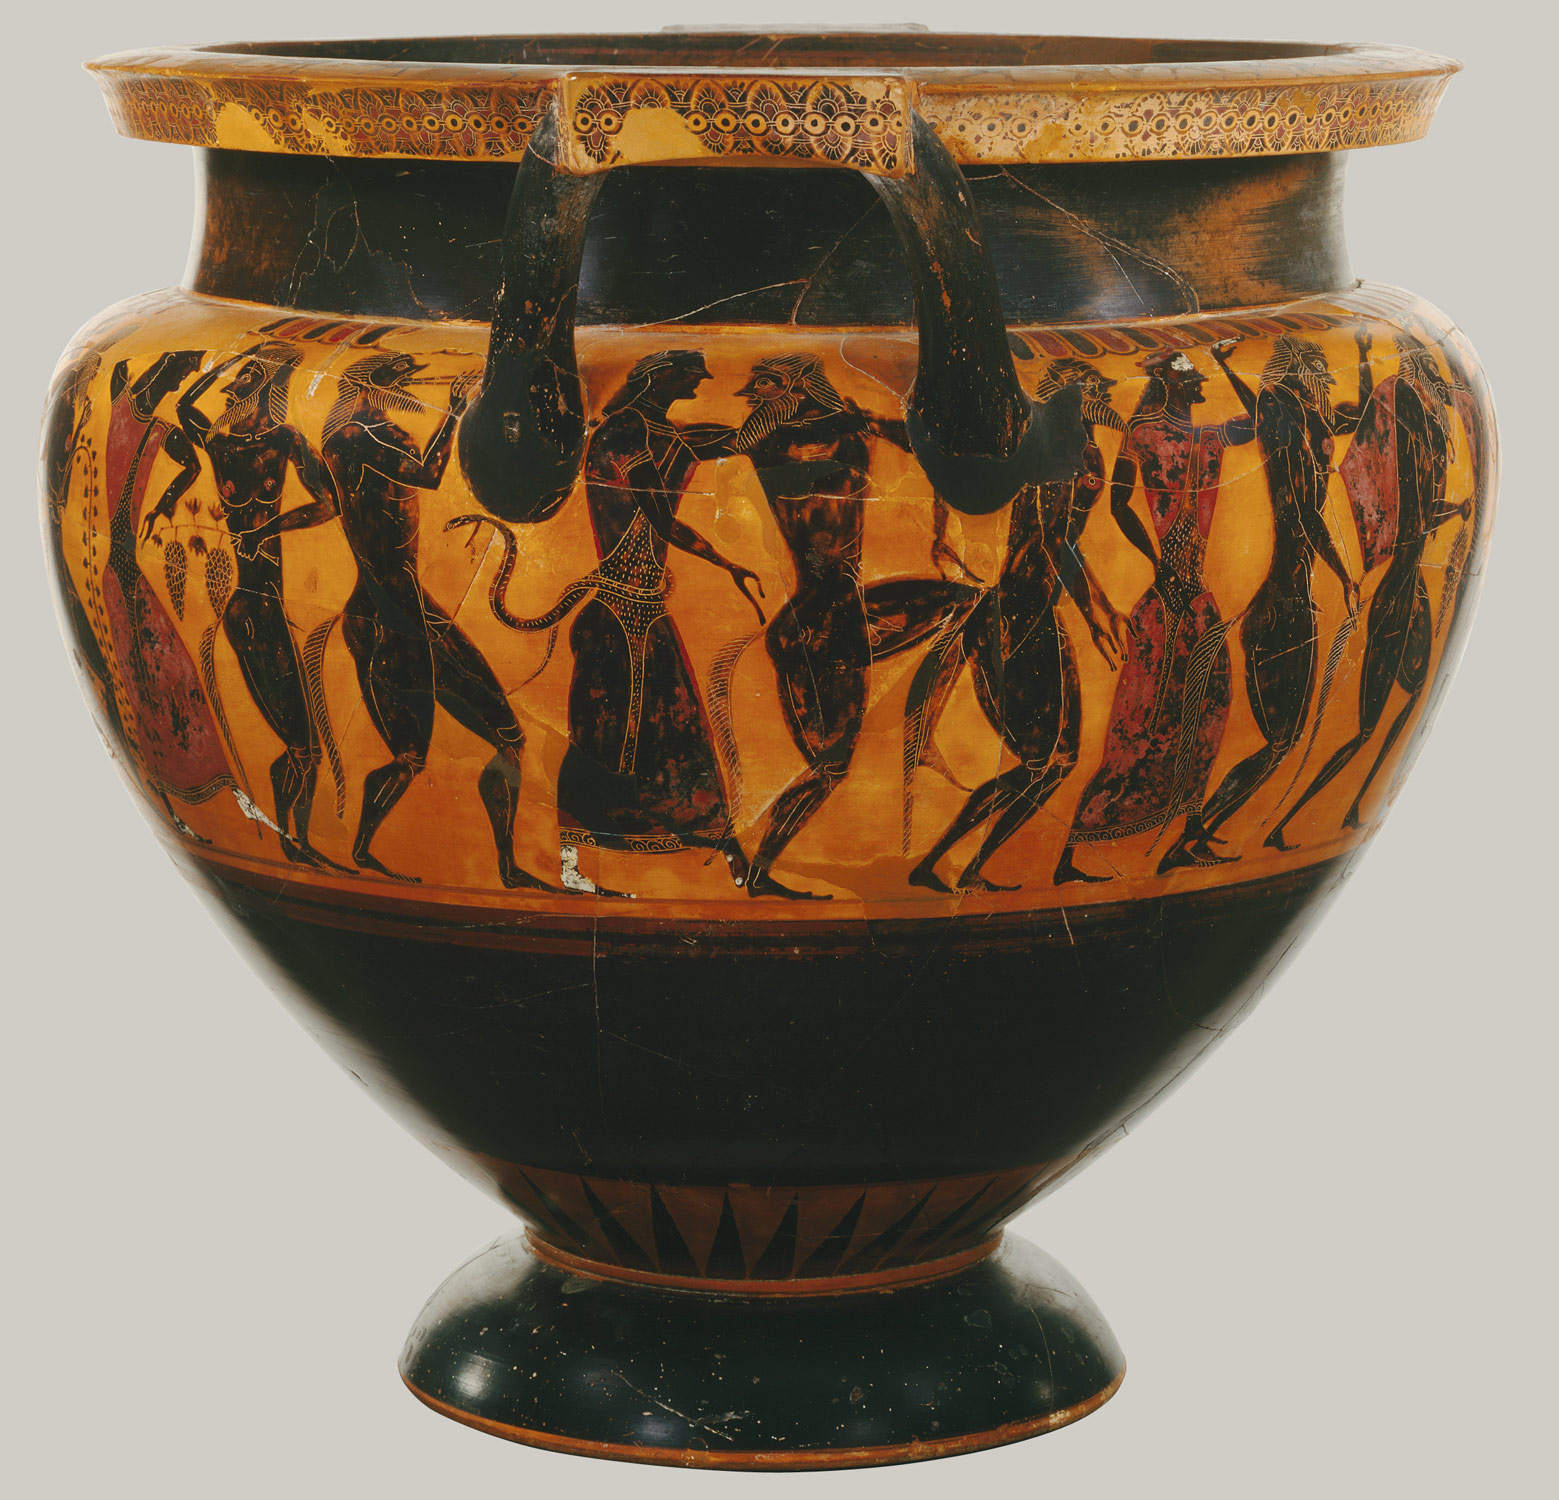 Terracotta Column Krater Bowl For Mixing Wine And Water